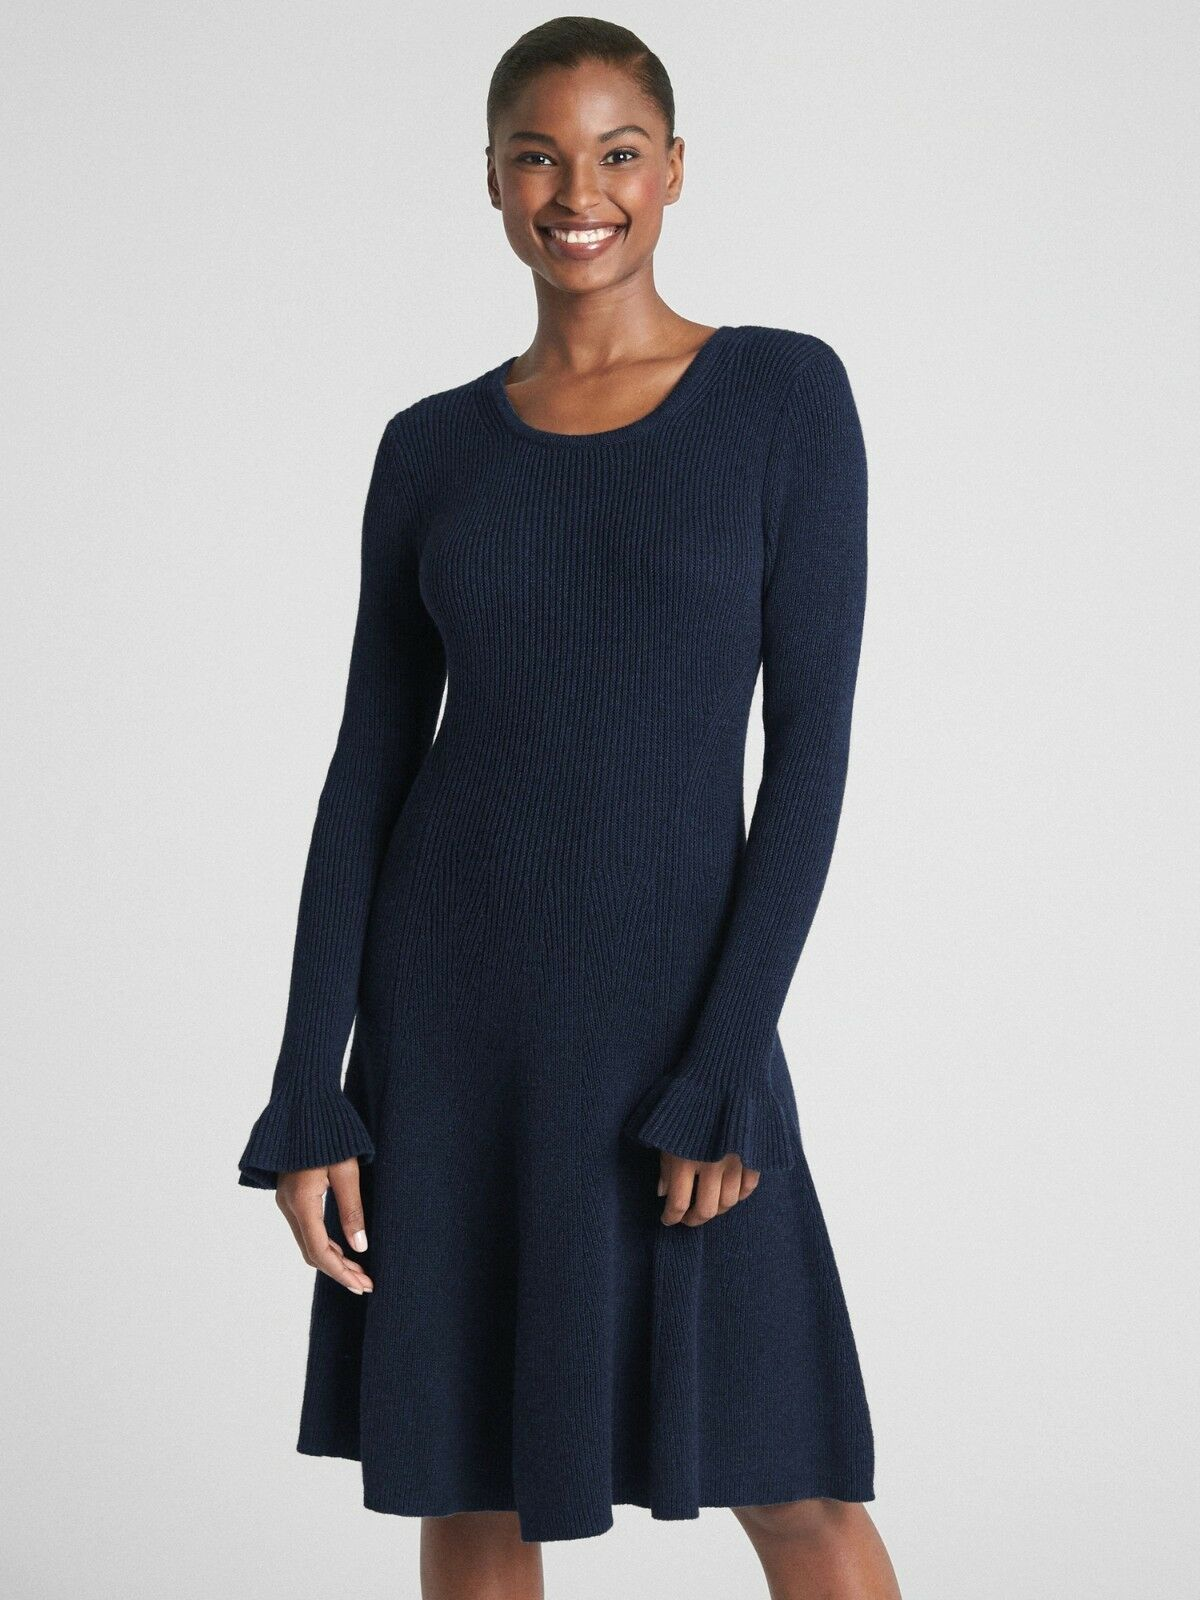 Gap Fit and Flare Long Sleeve Sweater Dress, NAVY SIZE ST S T      E1202